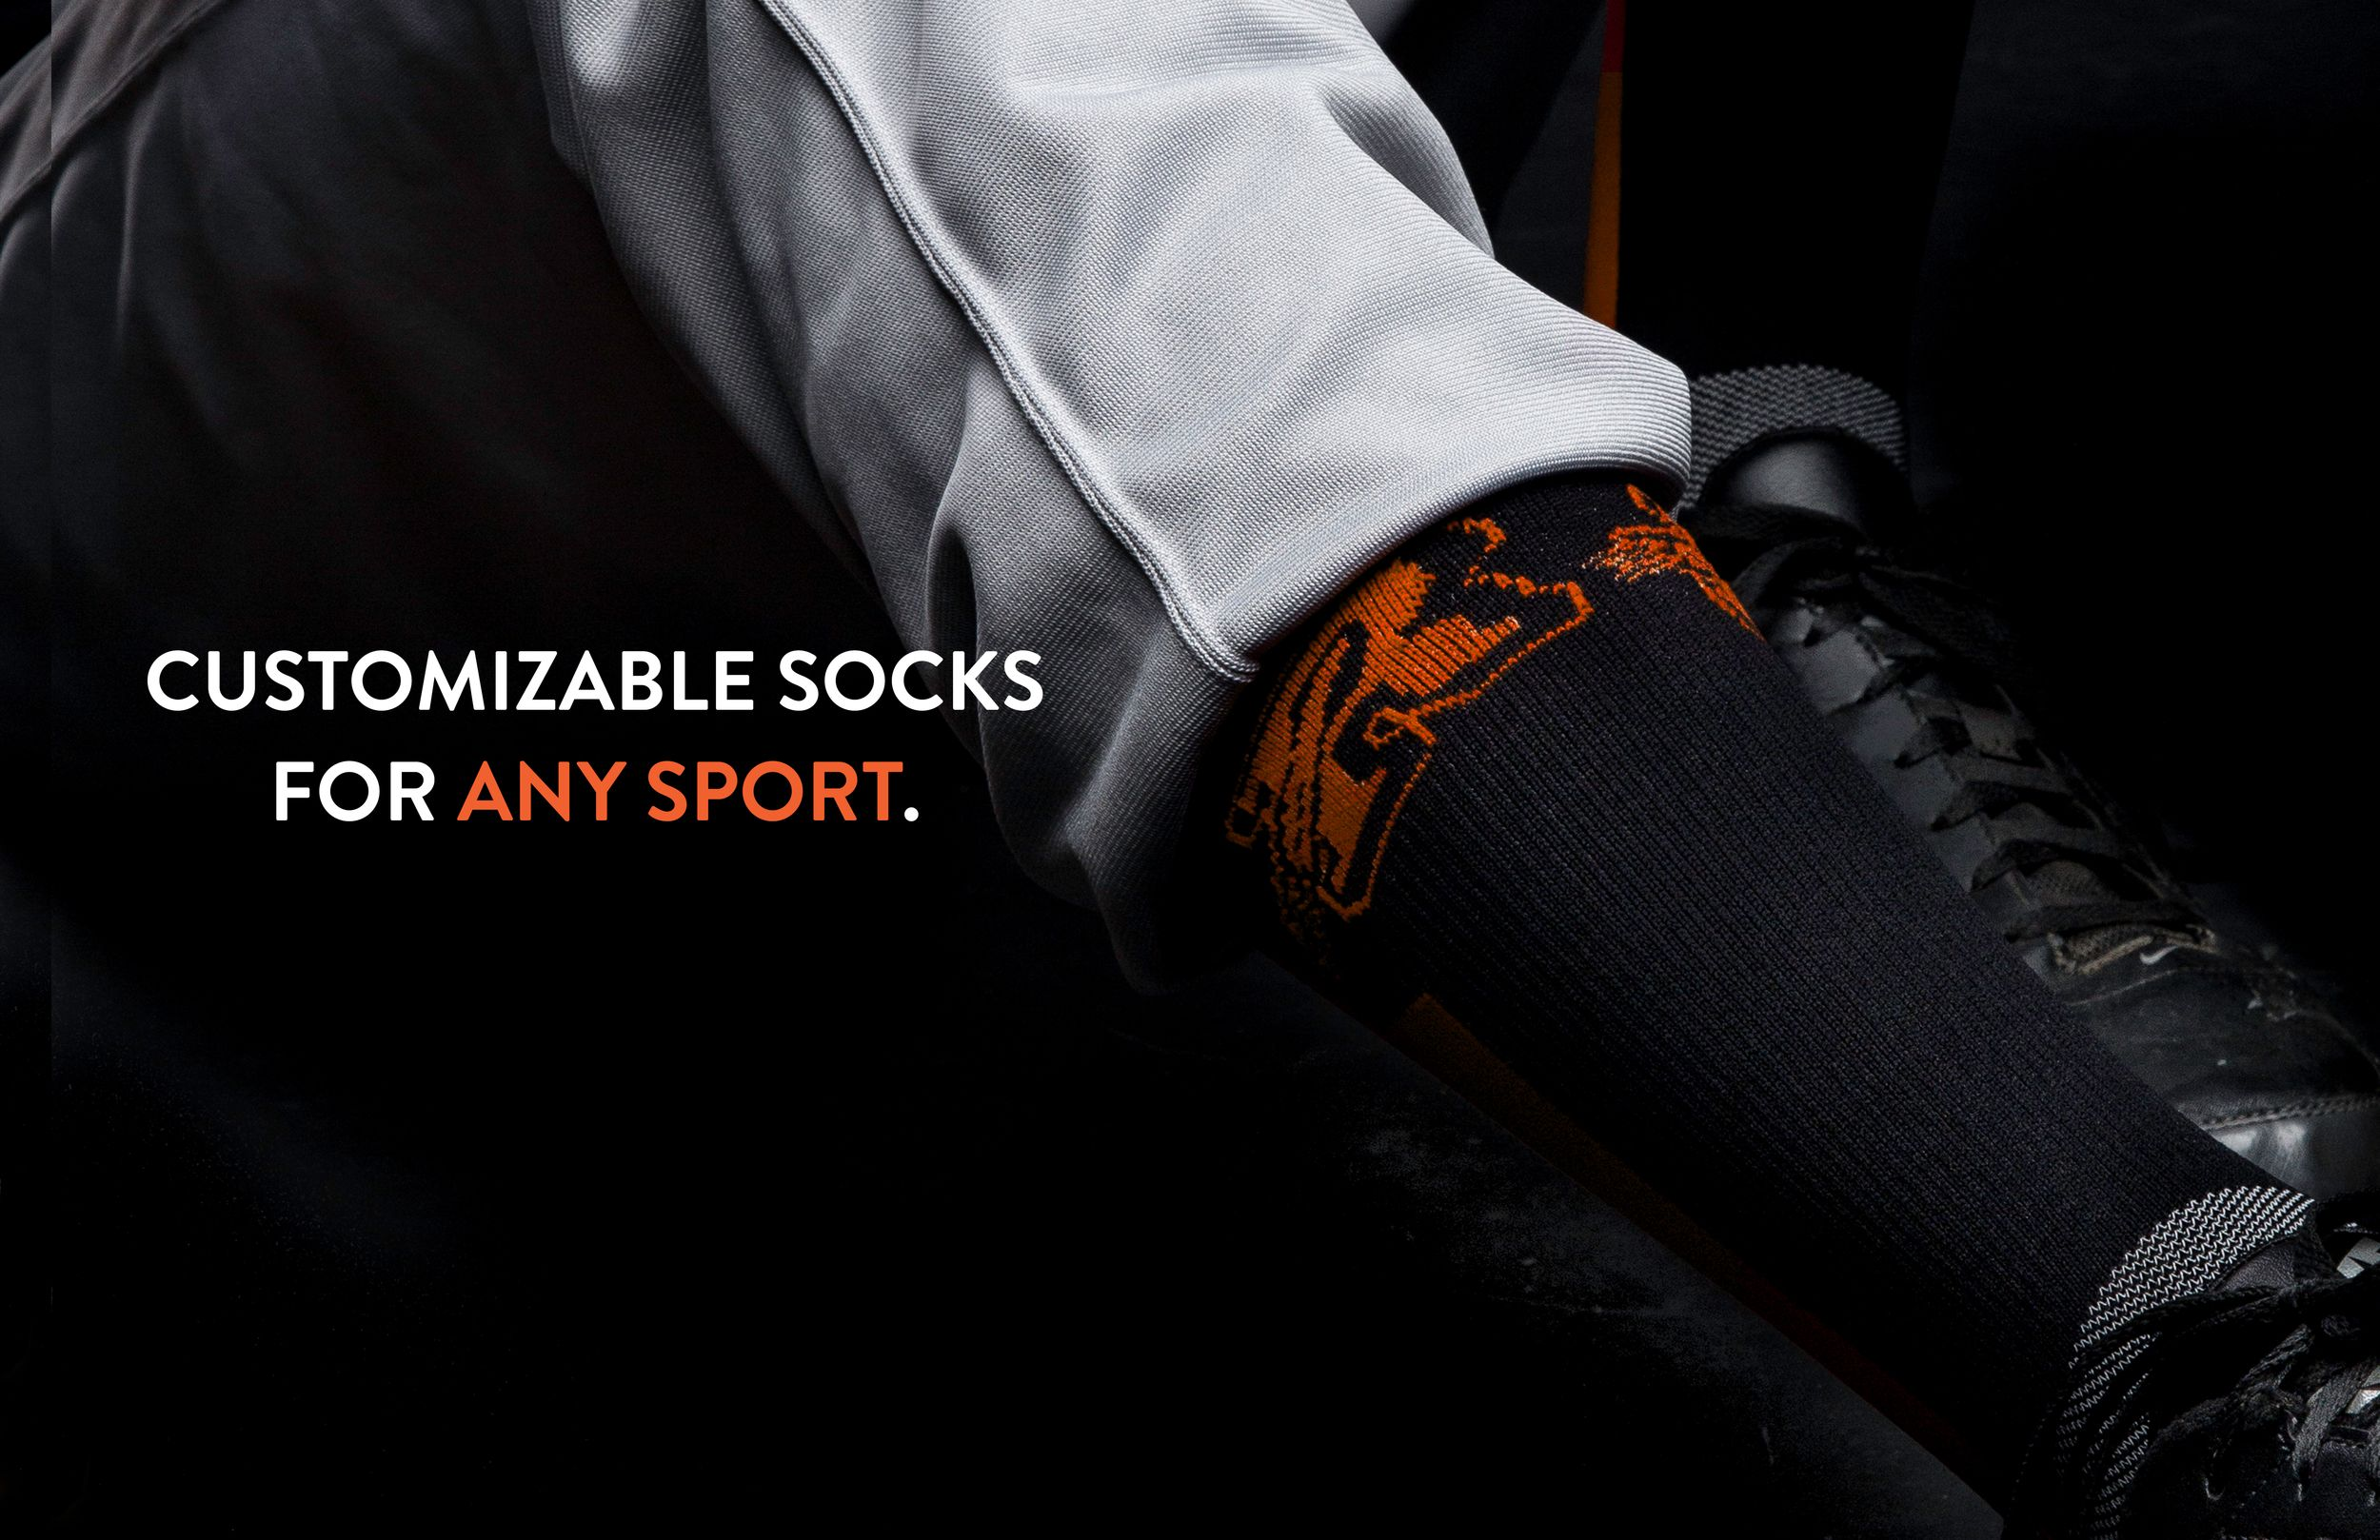 Custom socks are an extremely popular item right now among